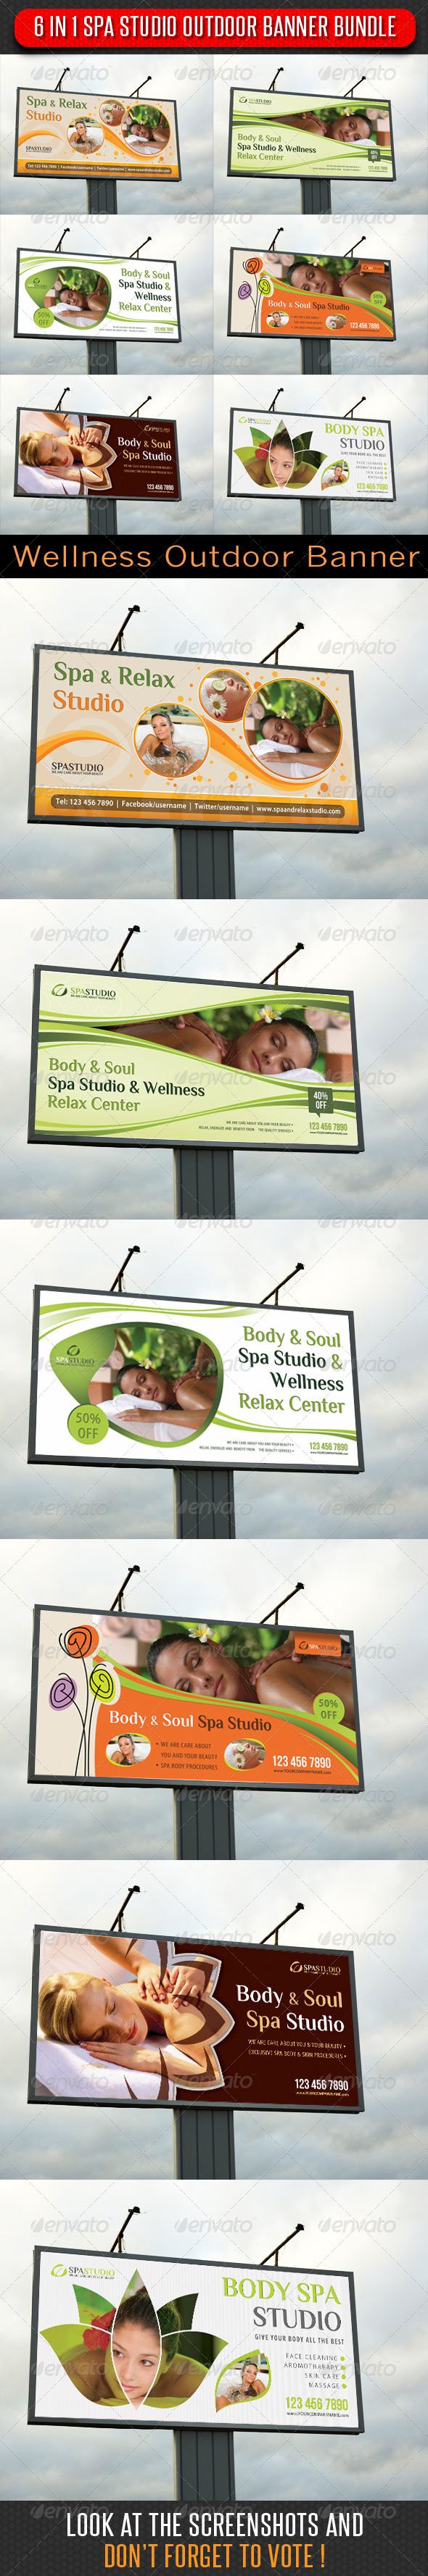 GraphicRiver 6 in 1 Spa Studio Outdoor Banner Bundle 6359271